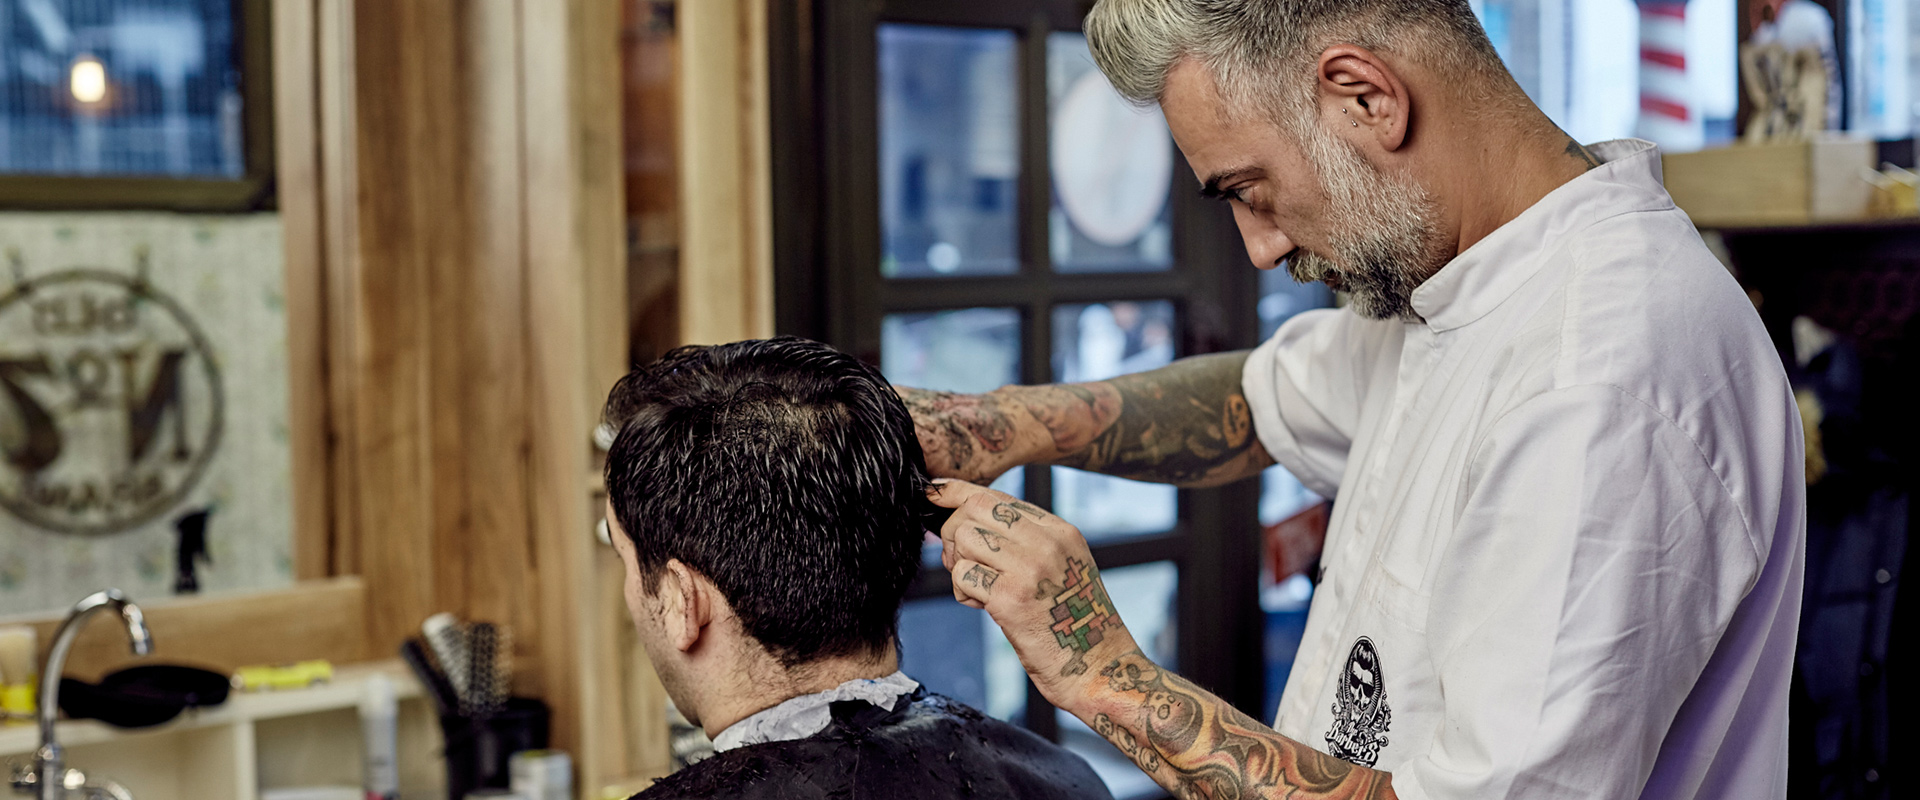 The best barber shops in Belgrade